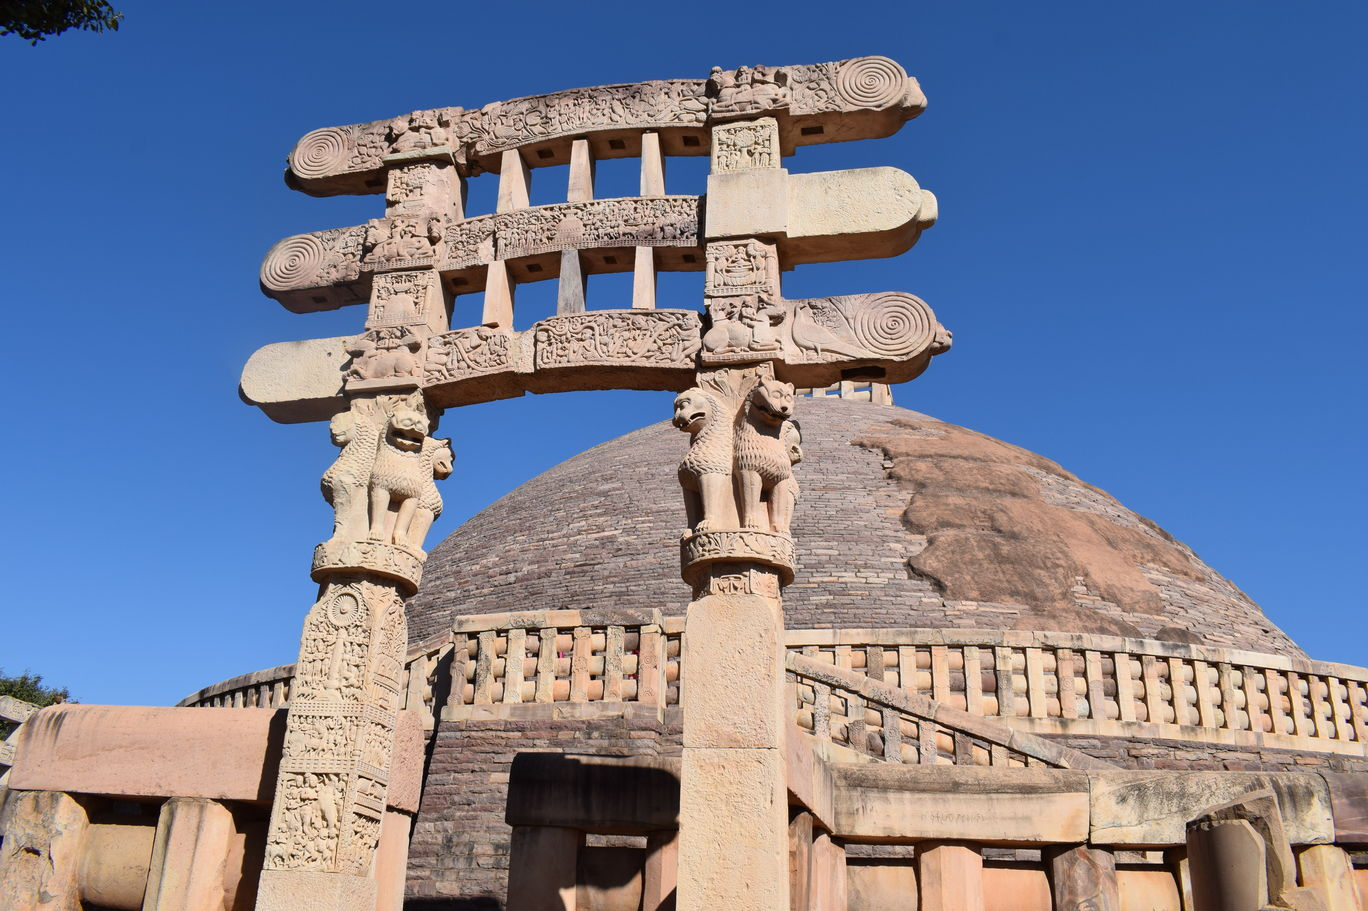 Photo of Sanchi Stupa By Shweta Phadnaik